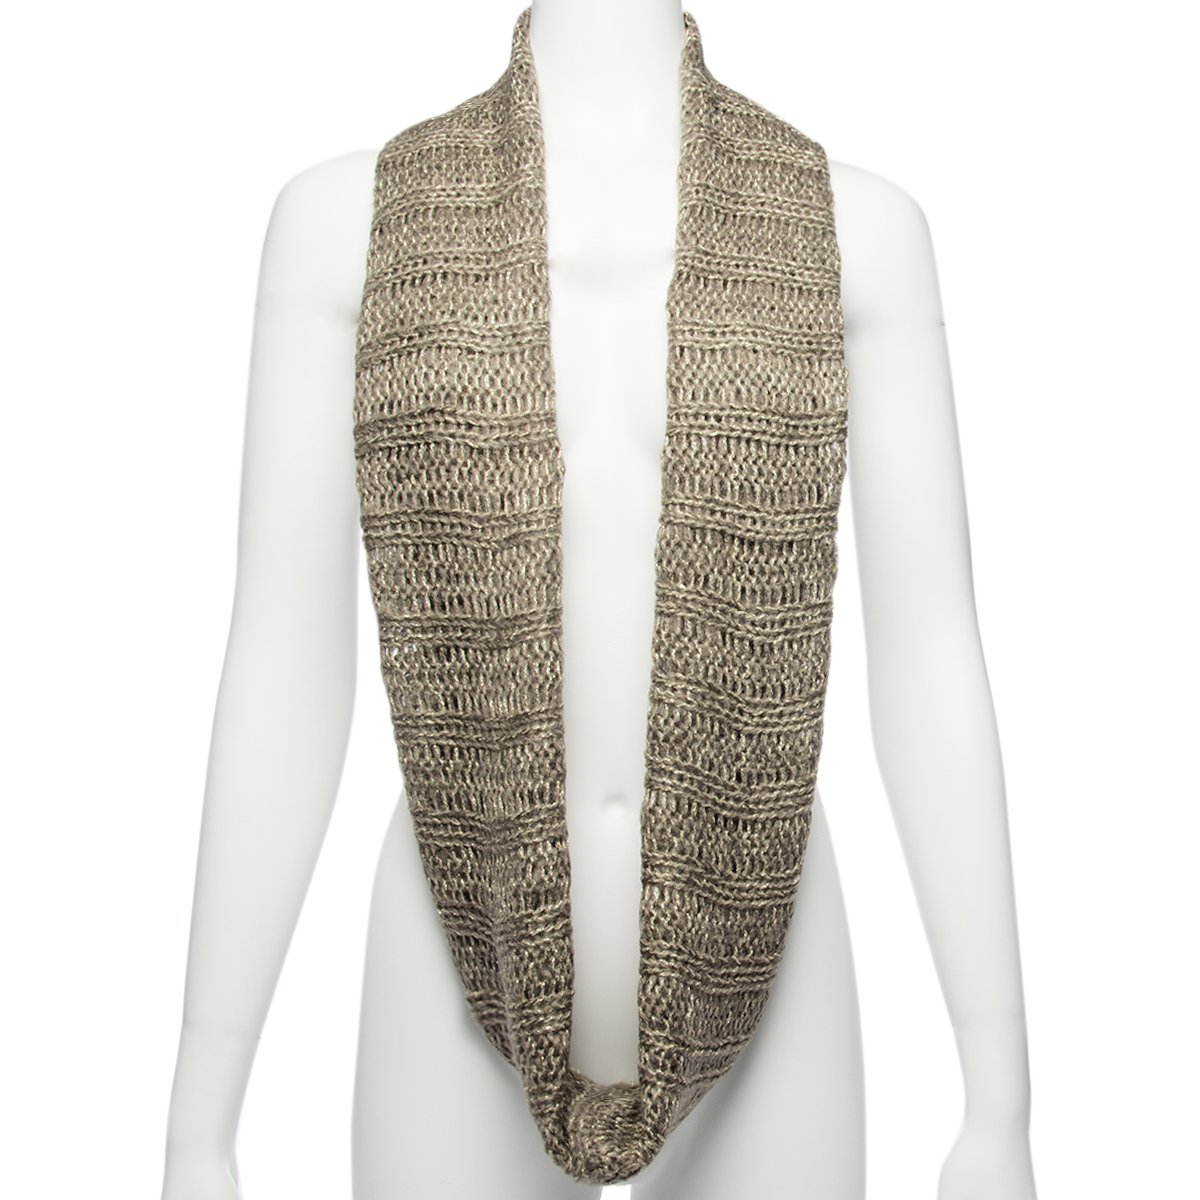 b6aab191b7bb9 The Royal Standard Infinity Scarf Cute Winter Scarf For Women Warm  Lightweight Wrap Metallic Loose Knit at Amazon Women's Clothing store: